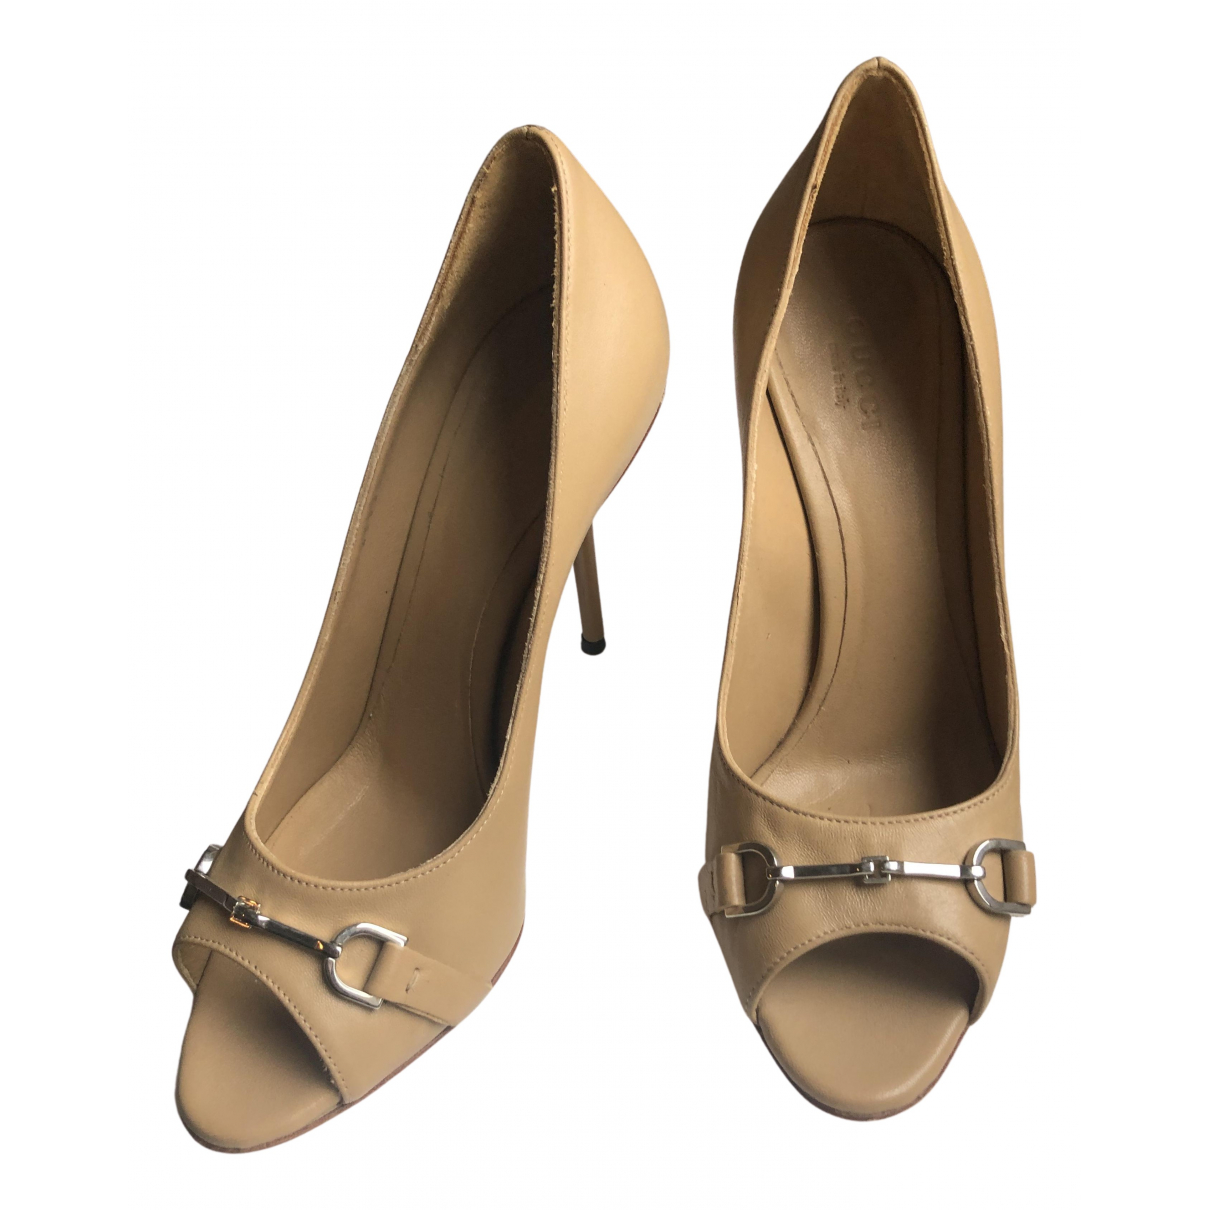 Gucci N Brown Leather Heels for Women 37.5 IT